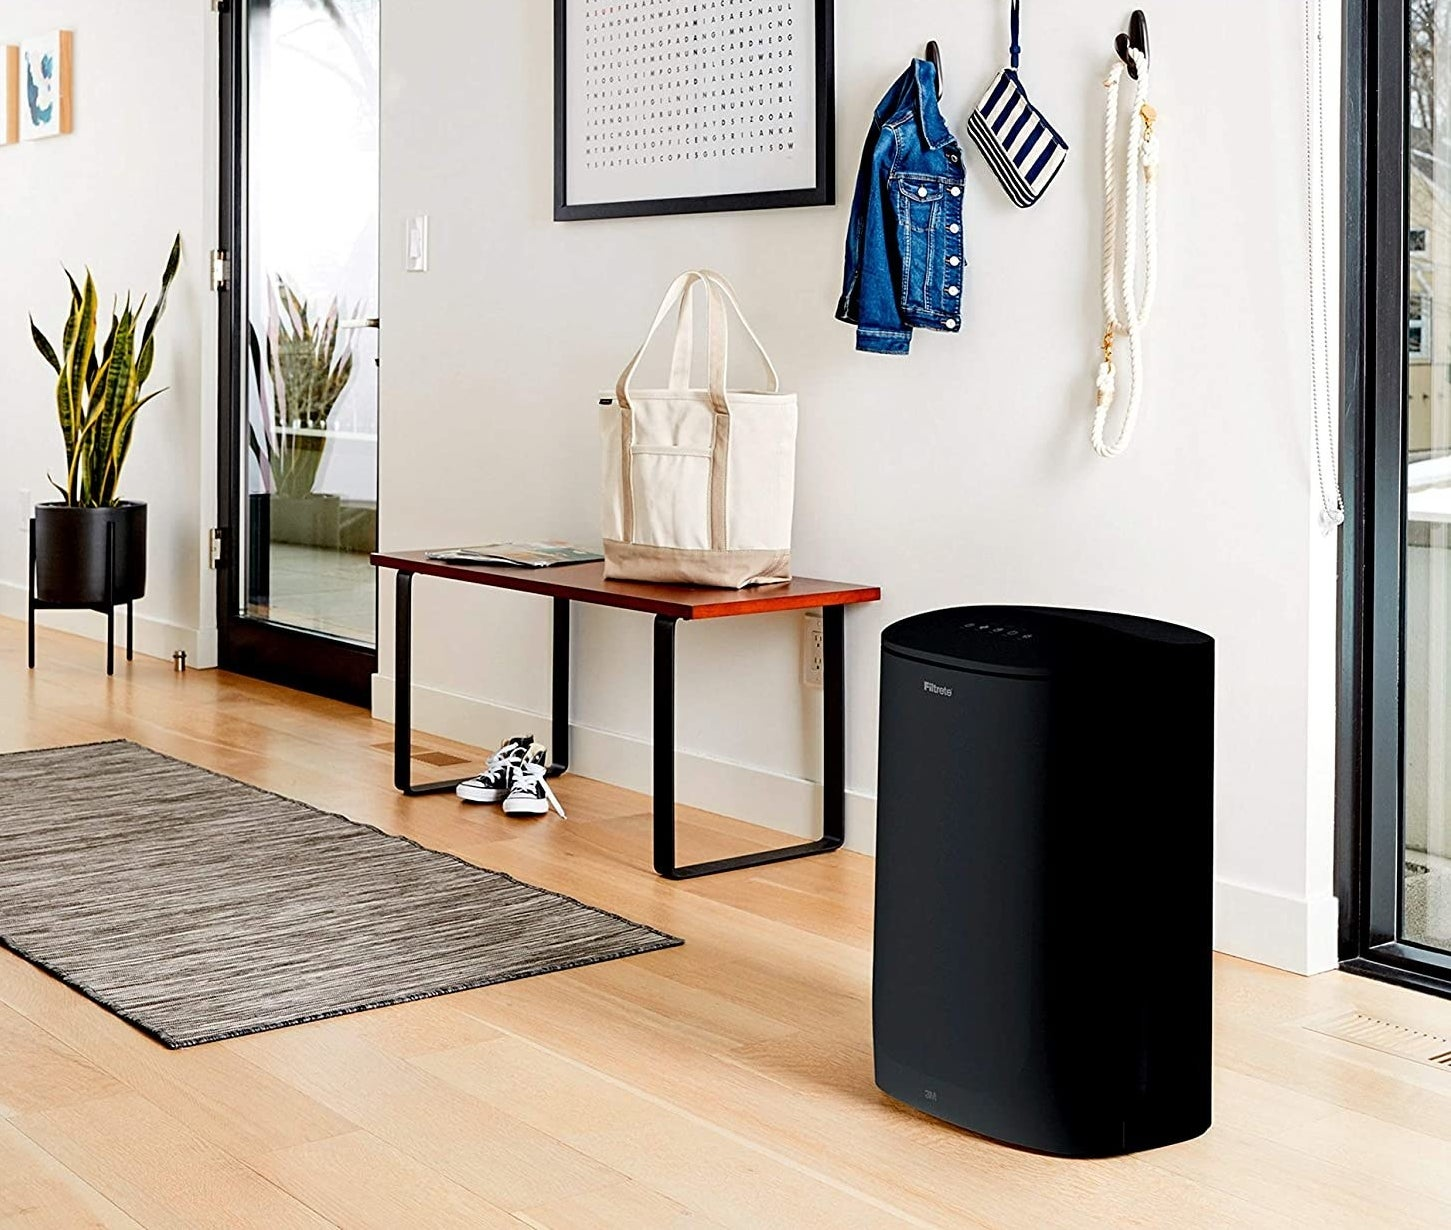 black air purifier styled in an entryway